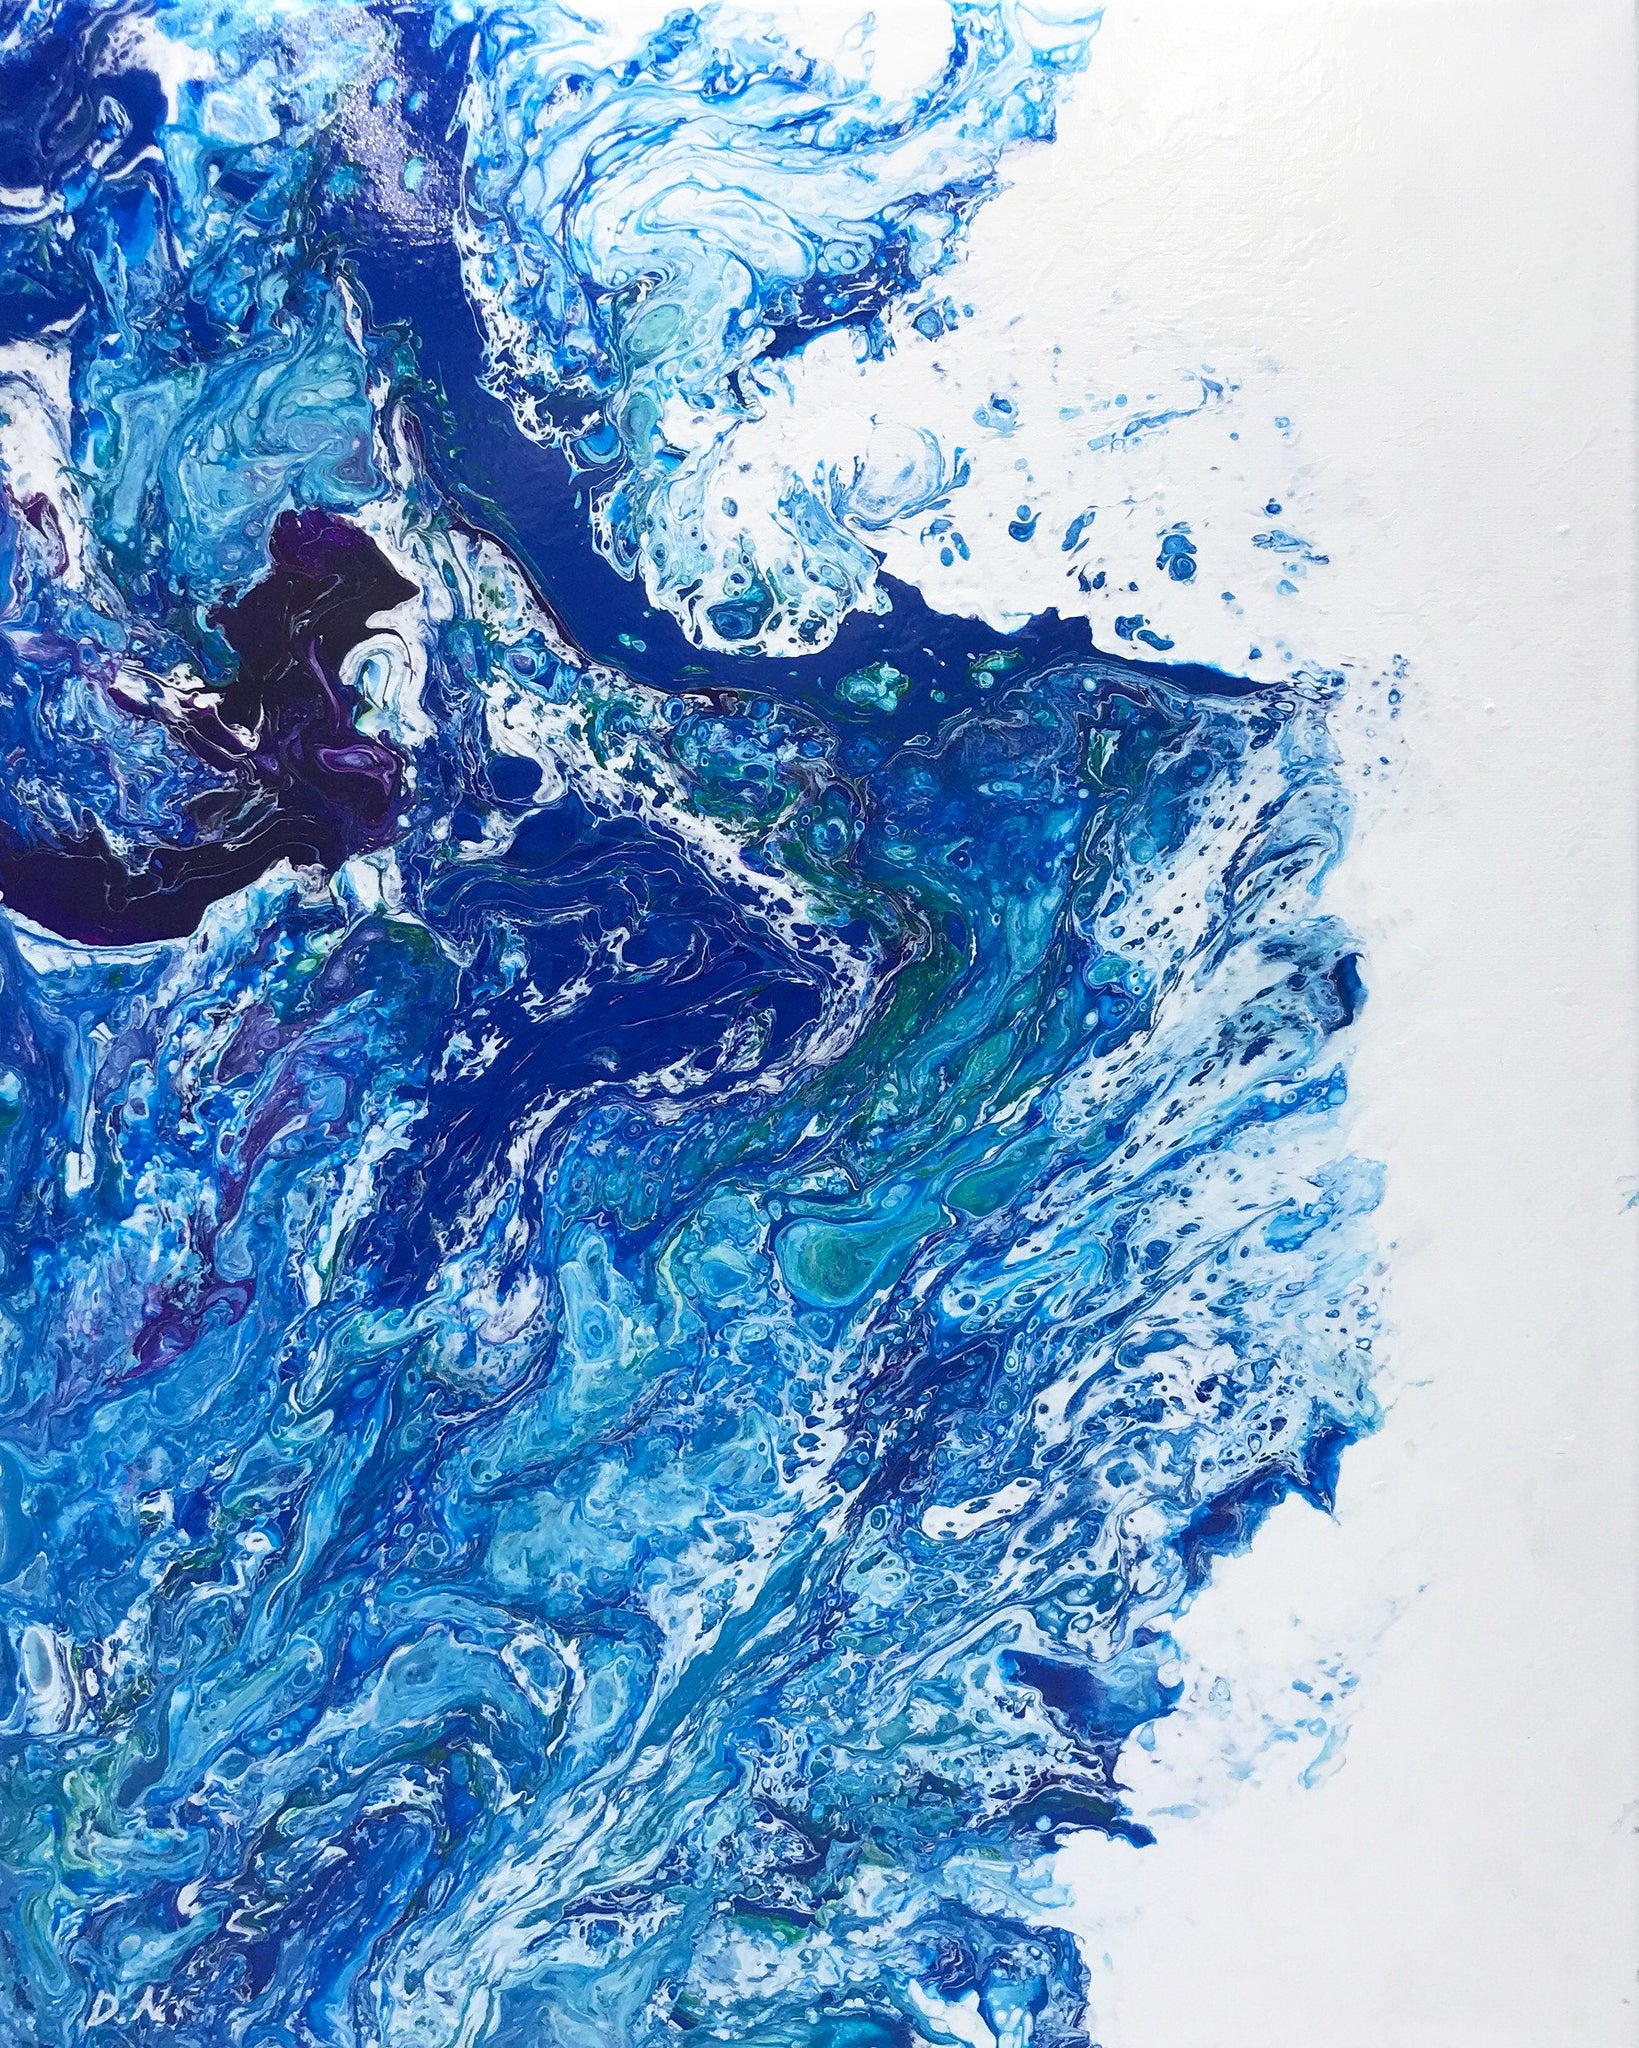 Frothing, Original Acrylic Fluid Art Painting 16x20""